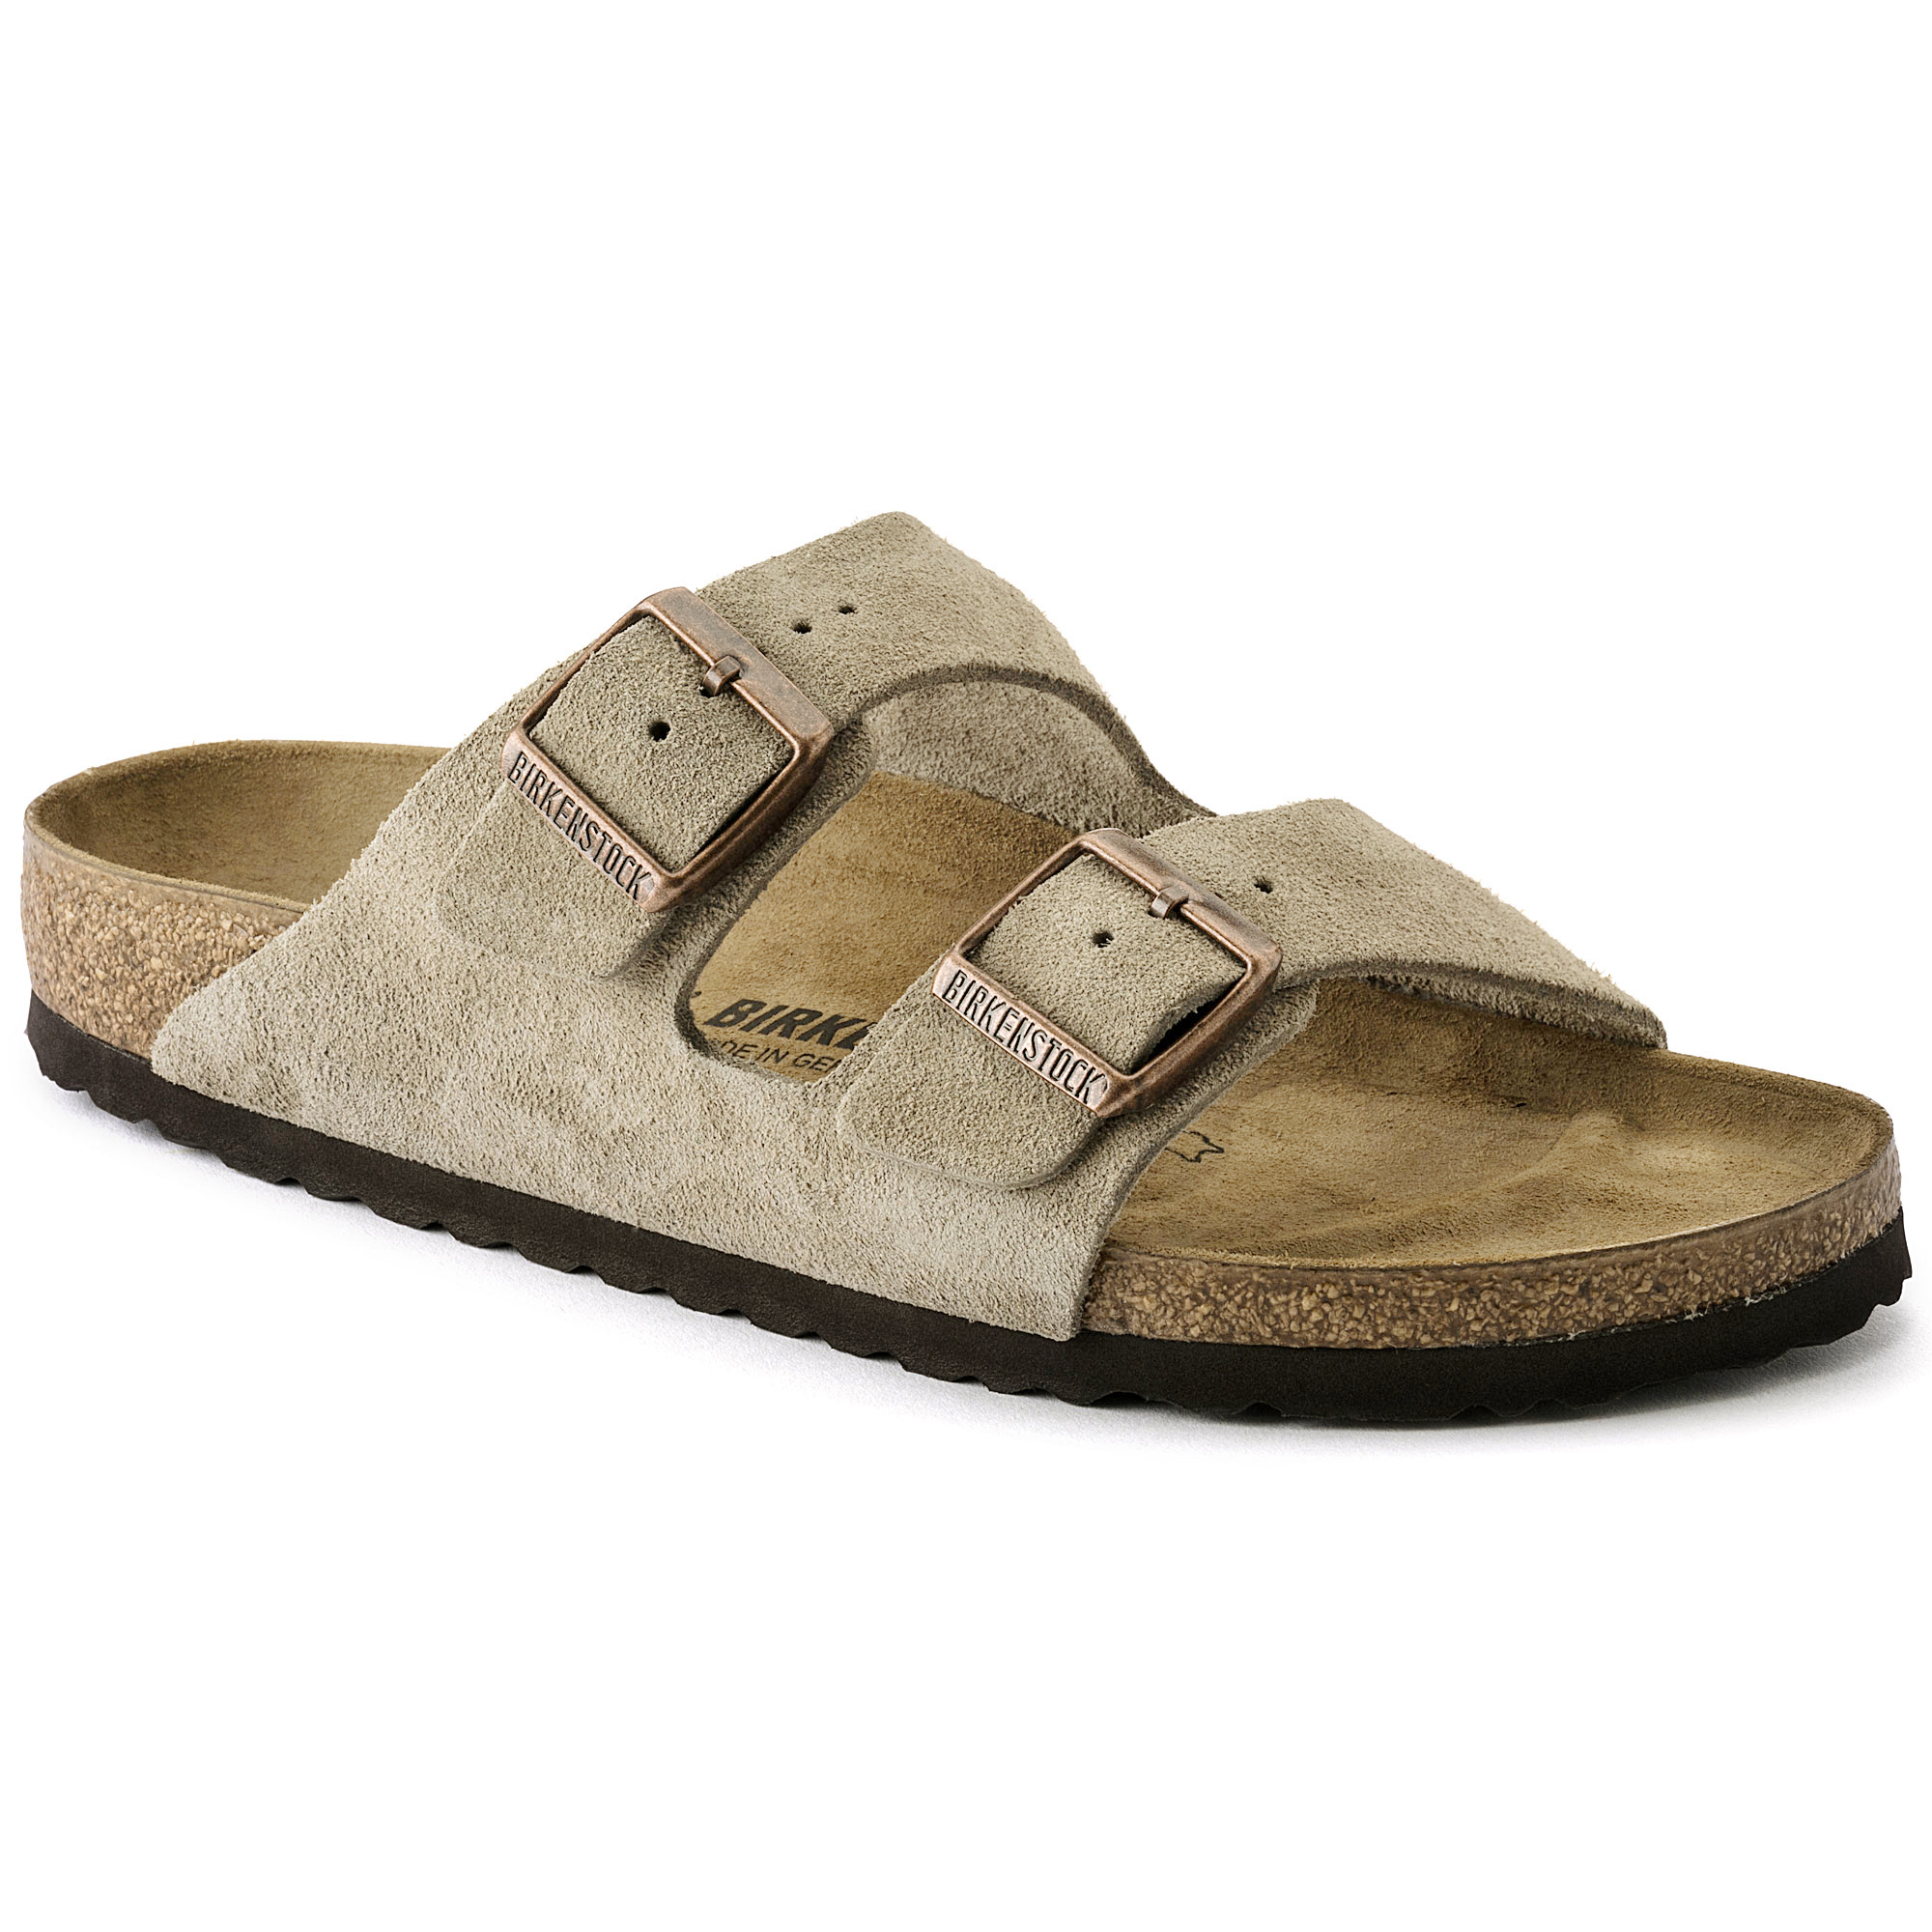 8ac1797aeb43 Arizona Suede Leather Taupe